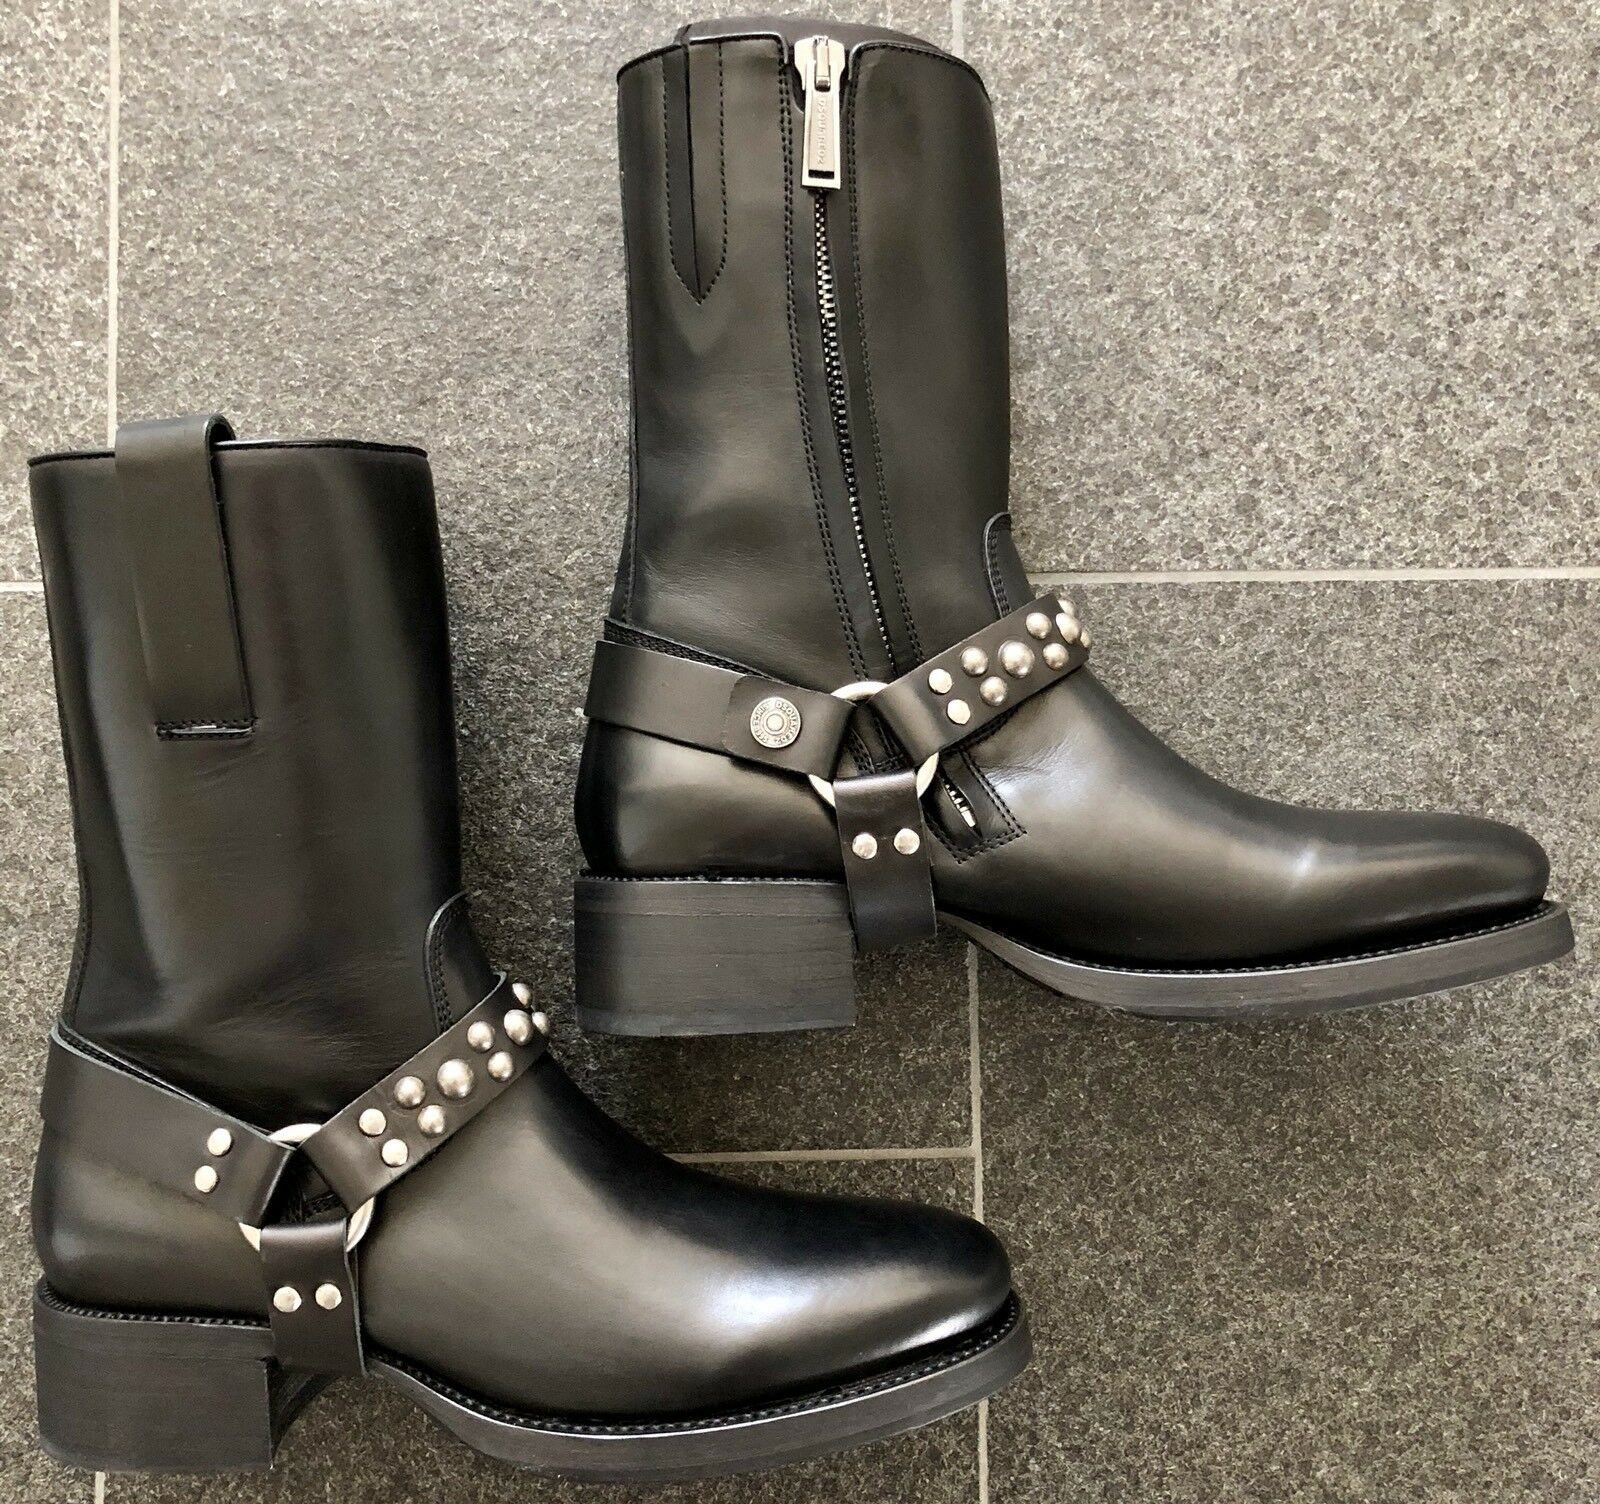 DSQUARED2 F/W 2015 20th anniversary ICON COLLECTION 45 black BOOTS studs STIEFEL